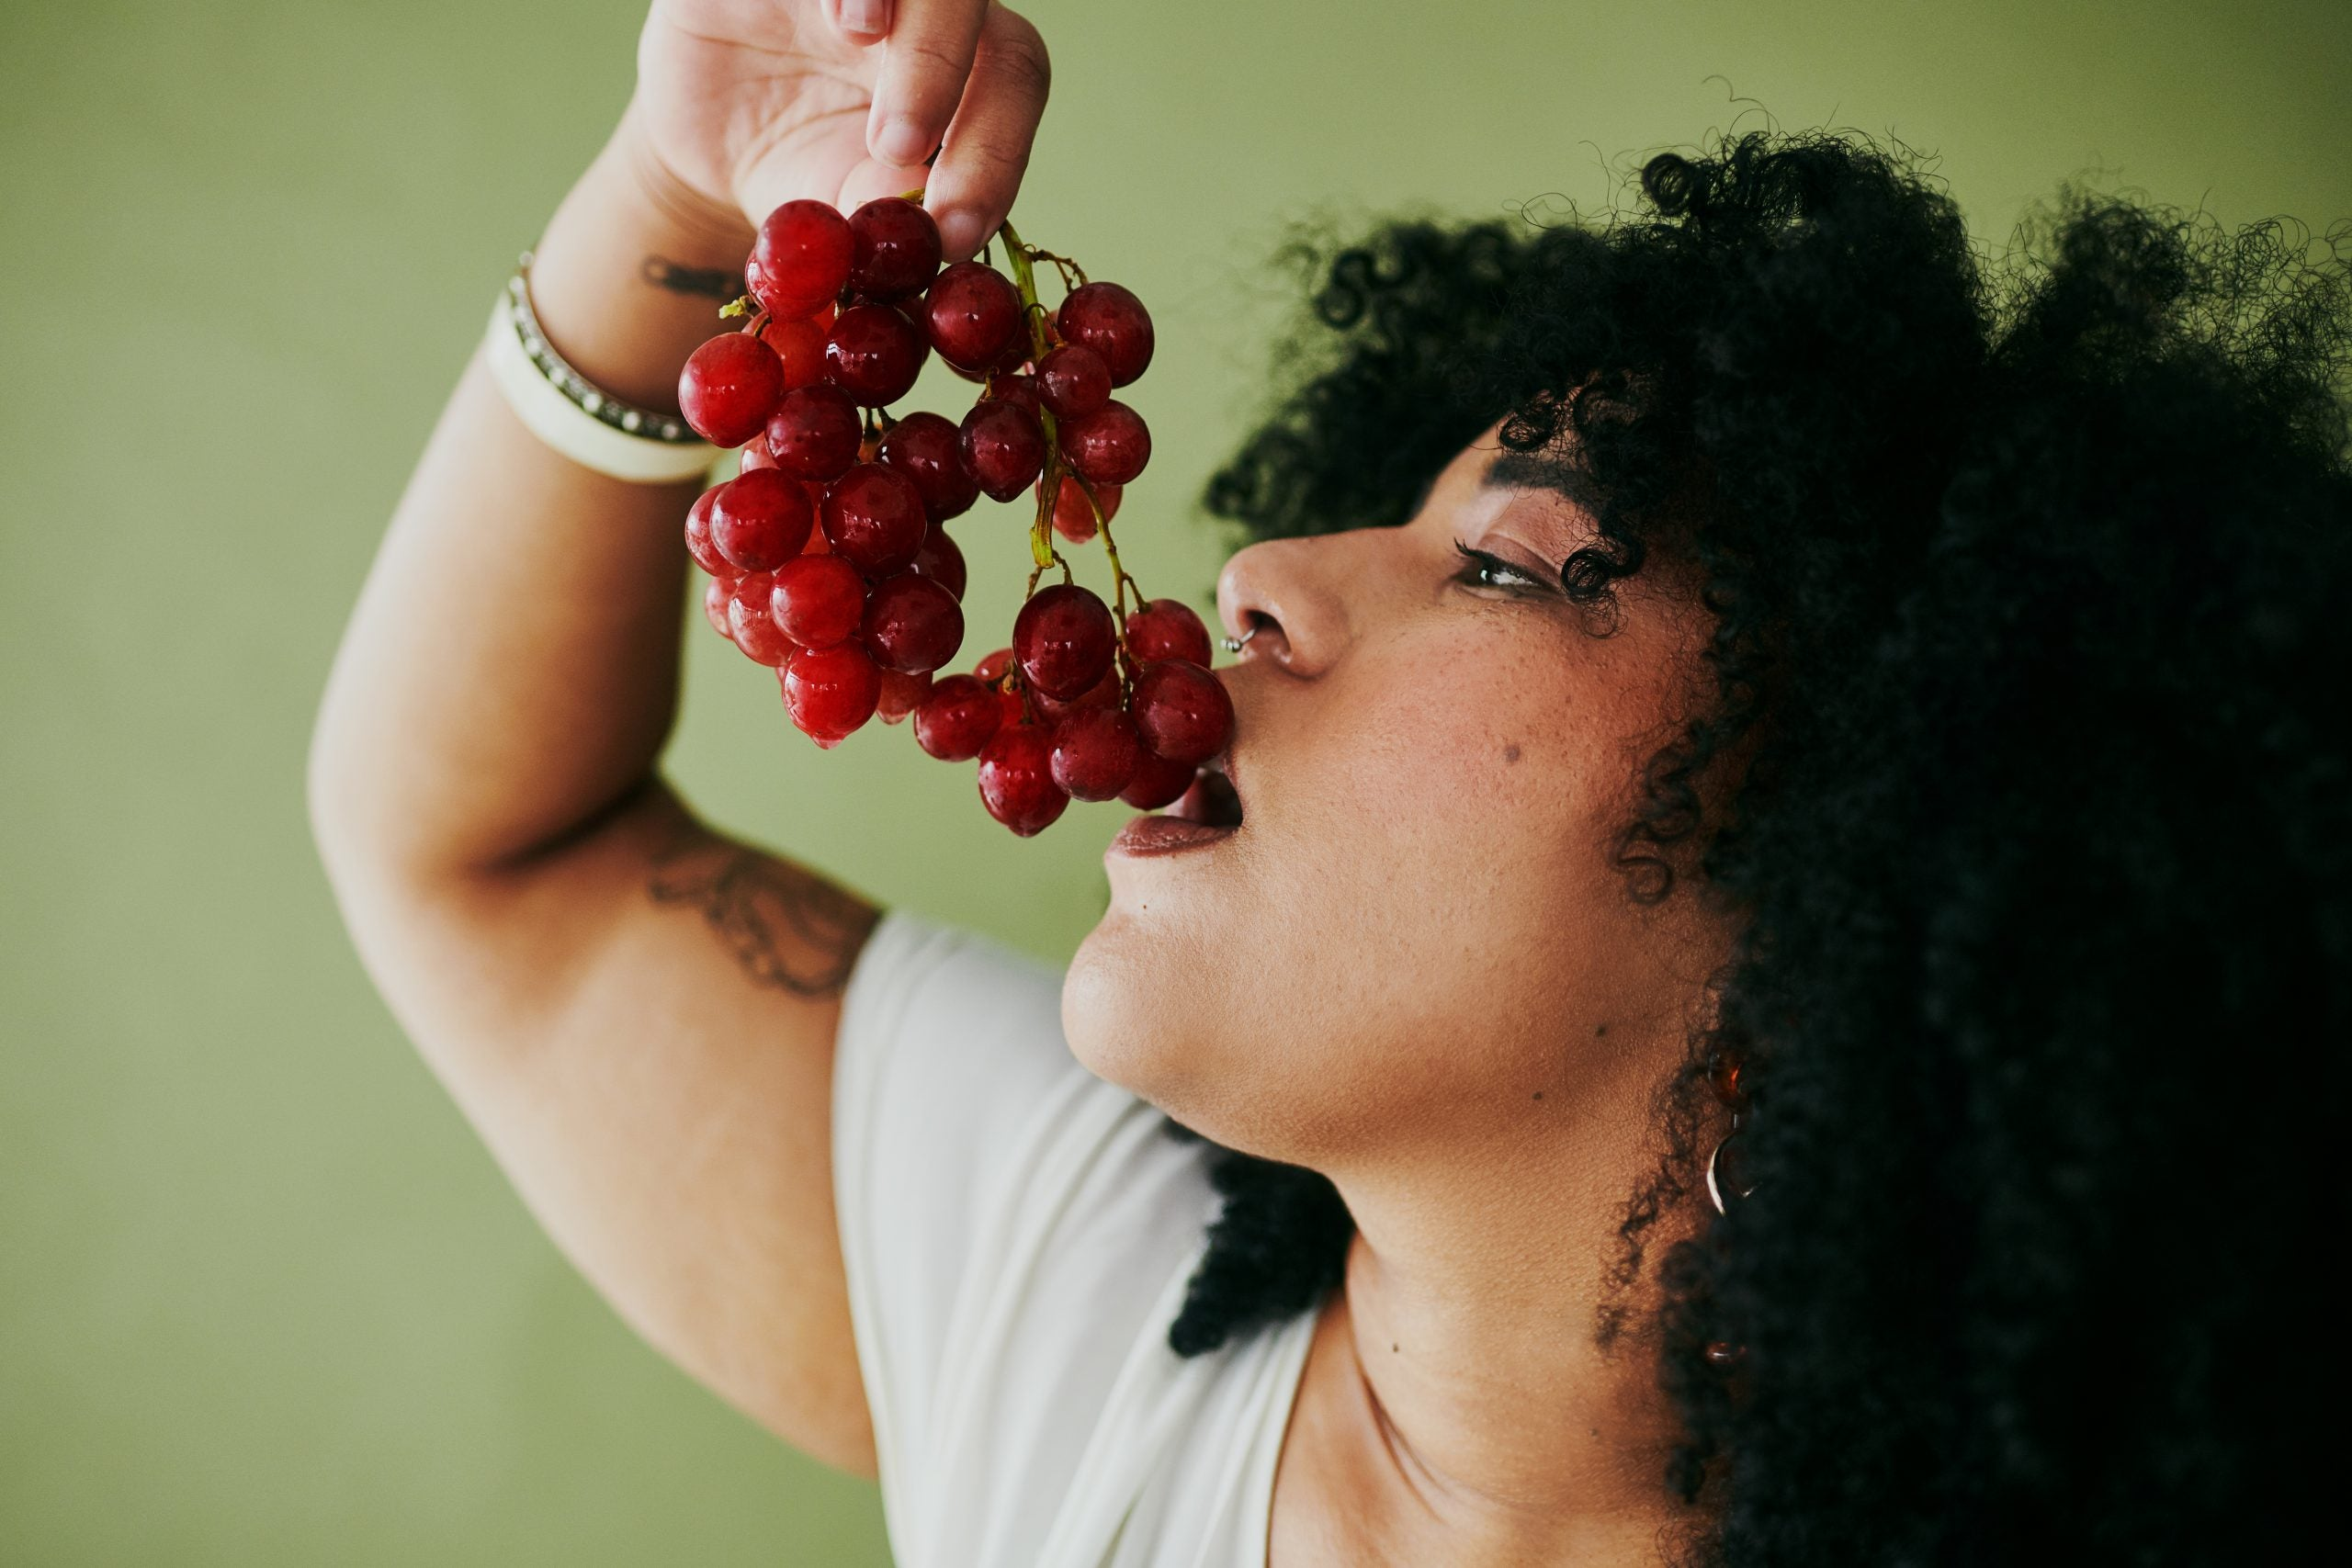 Woman with curly, black hair eating a bunch of red grapes. White shirt, green background